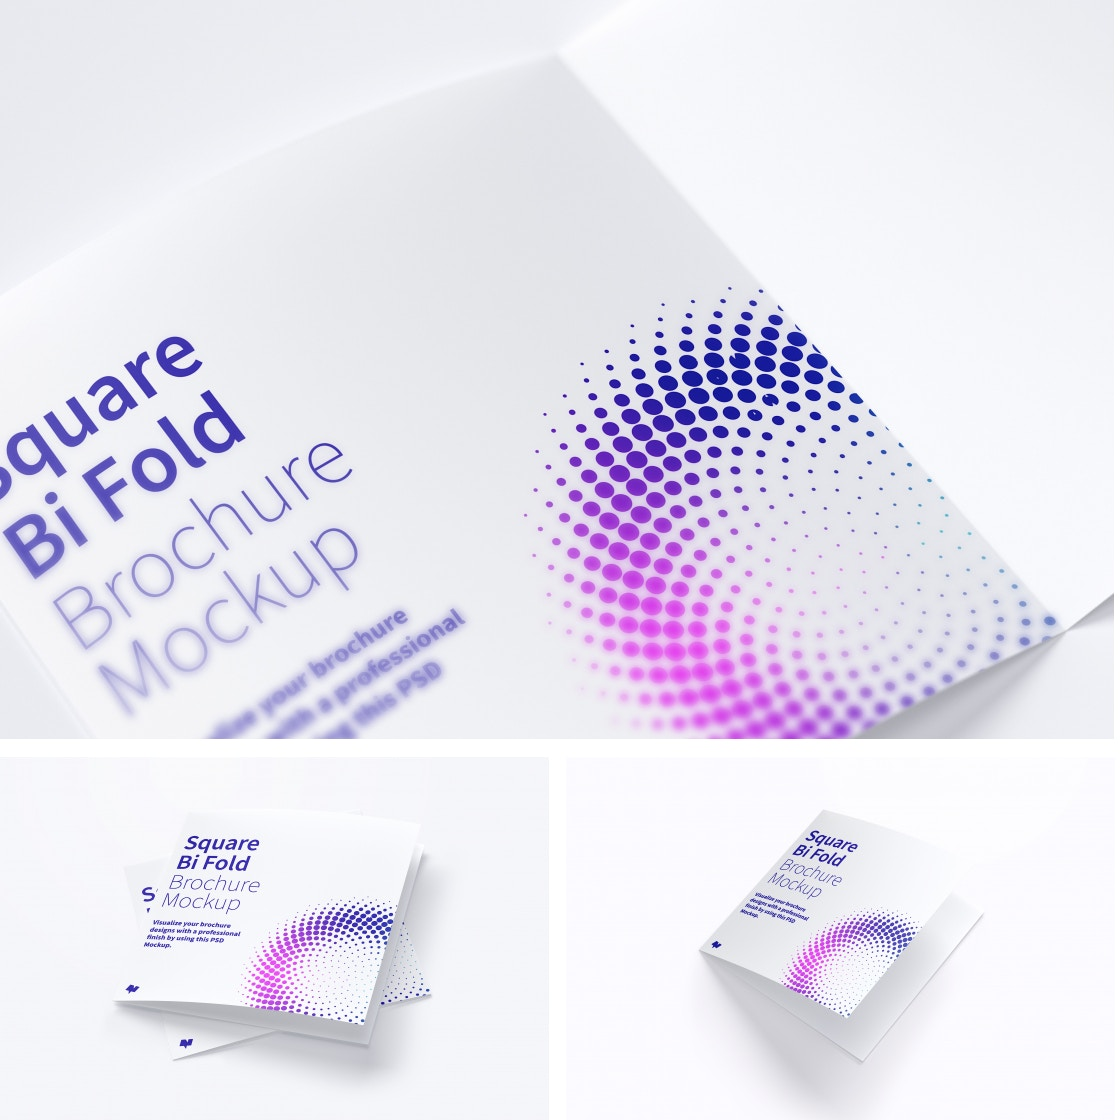 Square Bi Fold Brochure Mockups by Original Mockups on Original Mockups